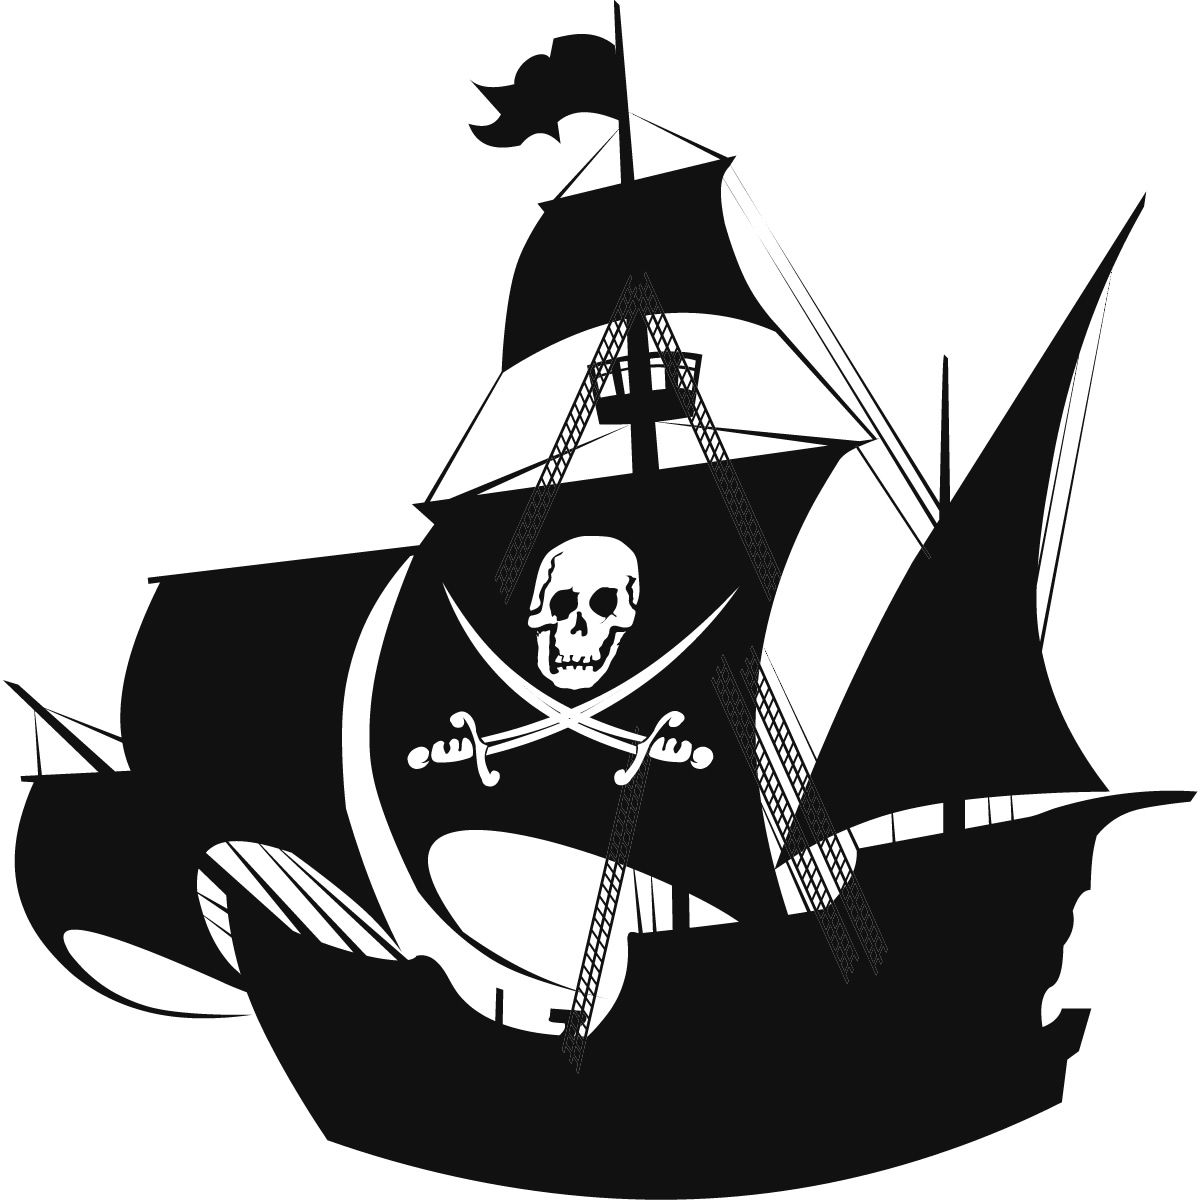 Details About Pirate Ship Kids Pirates Transport Wall Art Sticker - Decals for boat motorsoutboarddecalscom s of decals in stock